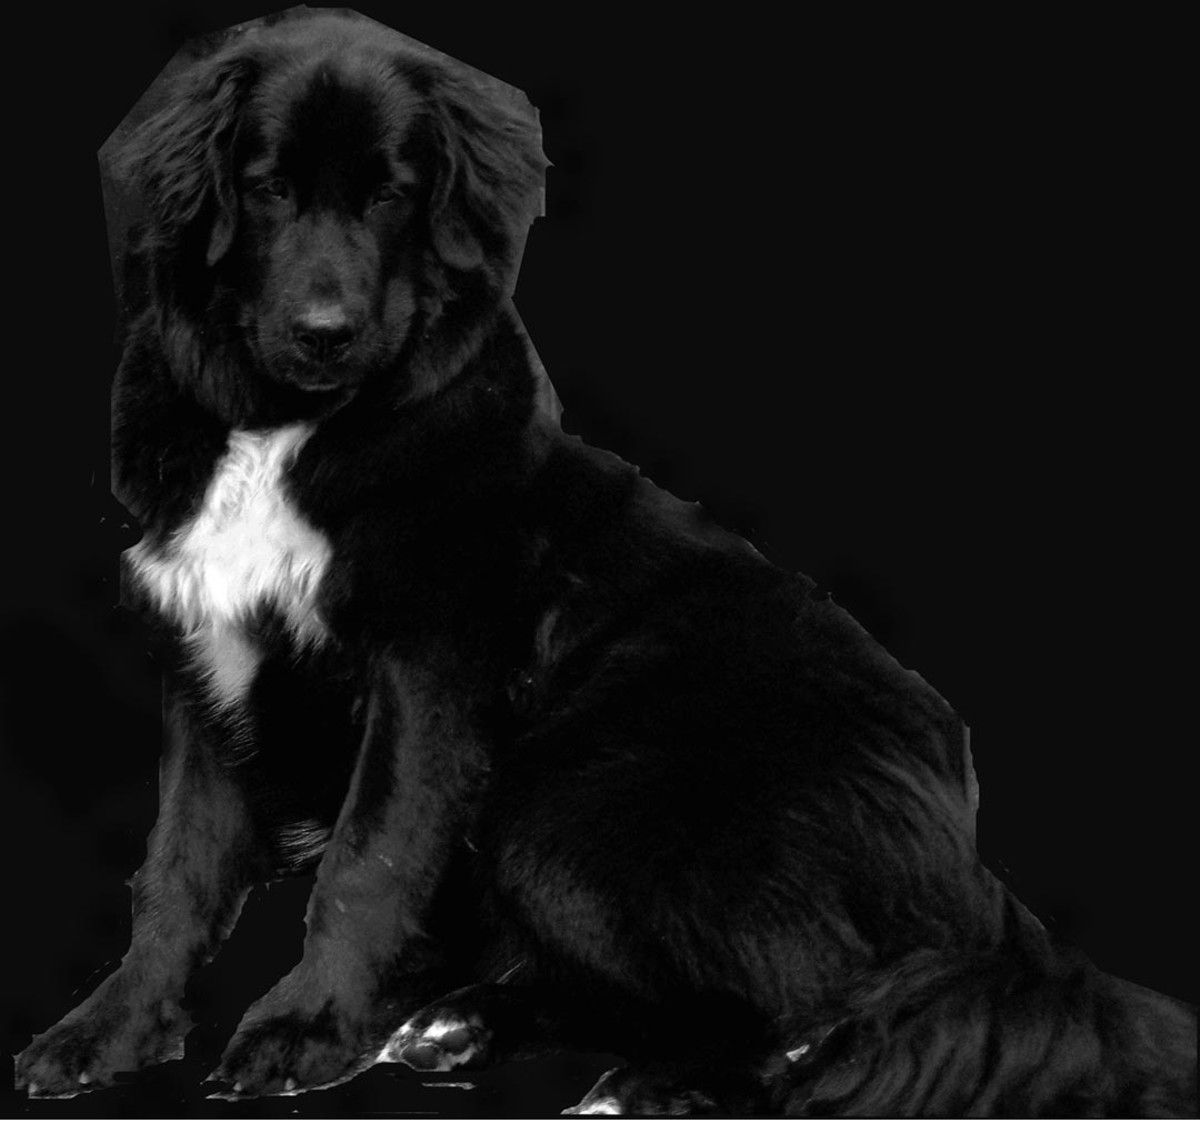 My Female Newfoundland dog named Magz